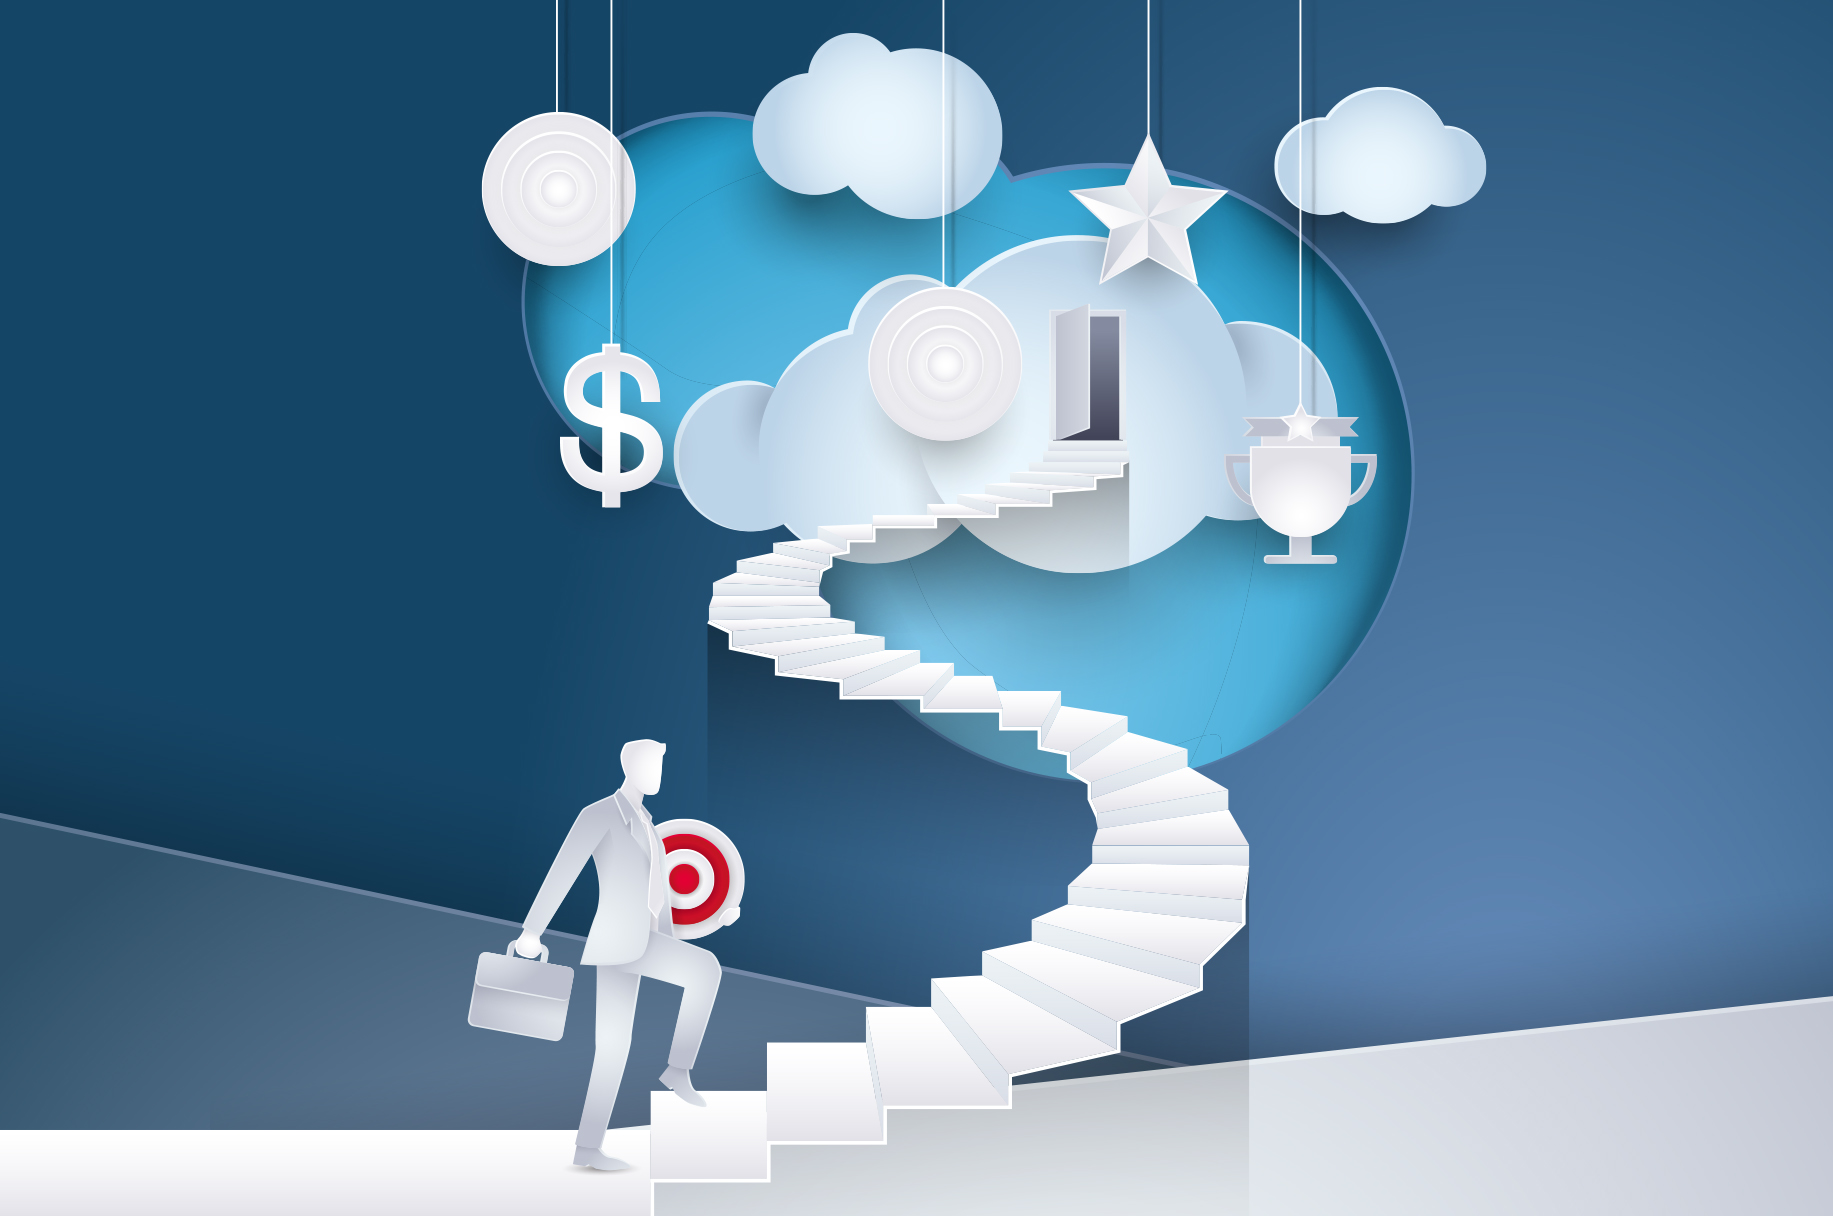 Grafik, Business Mann steigt Treppe in die Cloud hinauf, Illustration der Cloud-First-Strategie